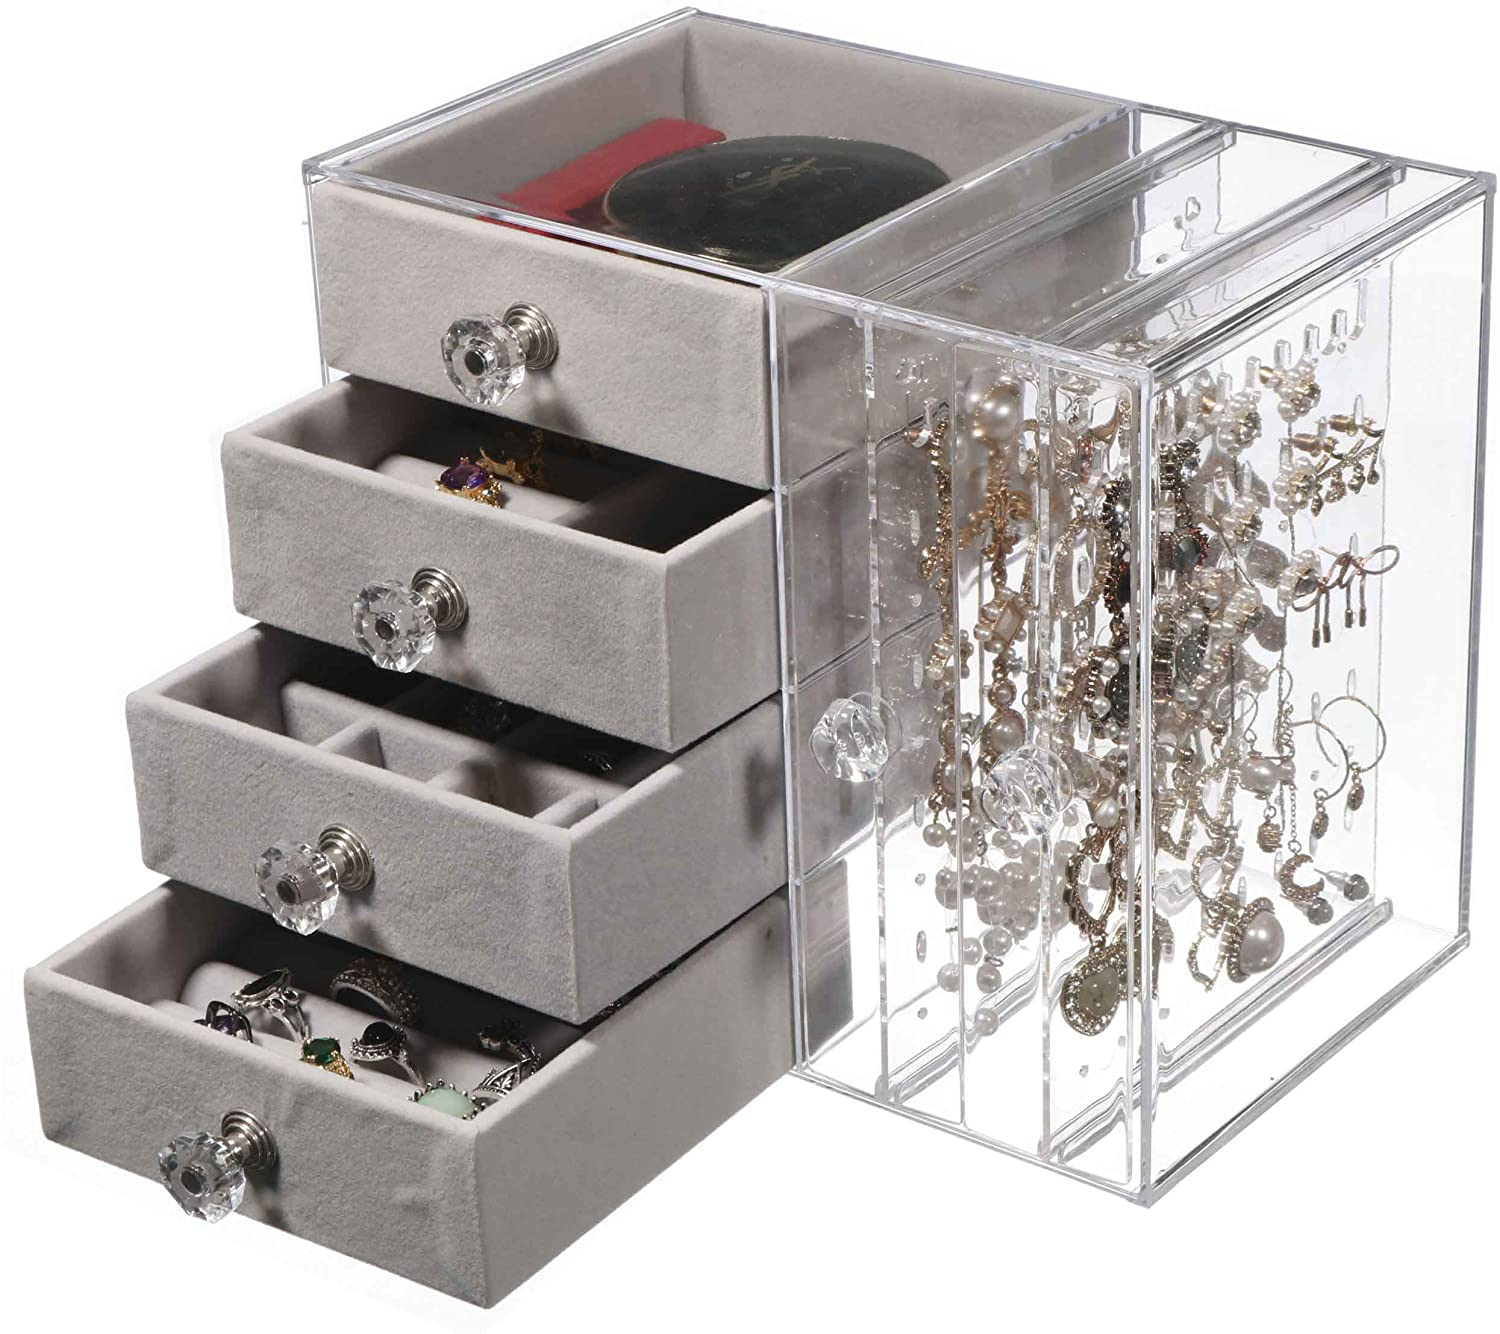 Cq acrylic Jewelry Box for Women with 4 Drawers, Hanging Velvet Jewelry Organizer for Earring Bangle Bracelet Necklace and Rings Storage Clear Acrylic Jewelry case,Gray